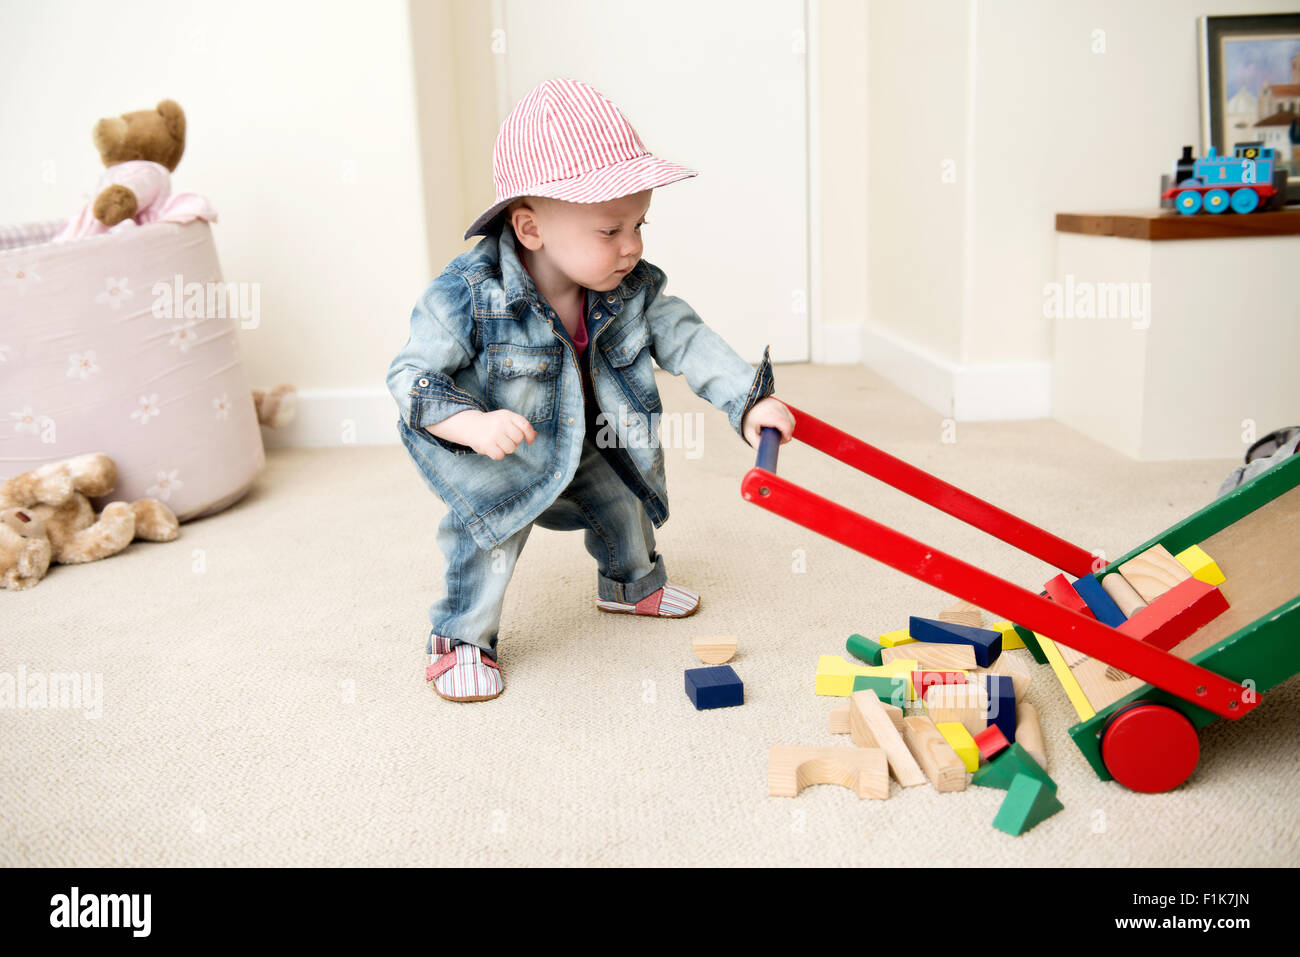 Infant boy wearing a hat plays with toys on the floor of a playroom - Stock Image